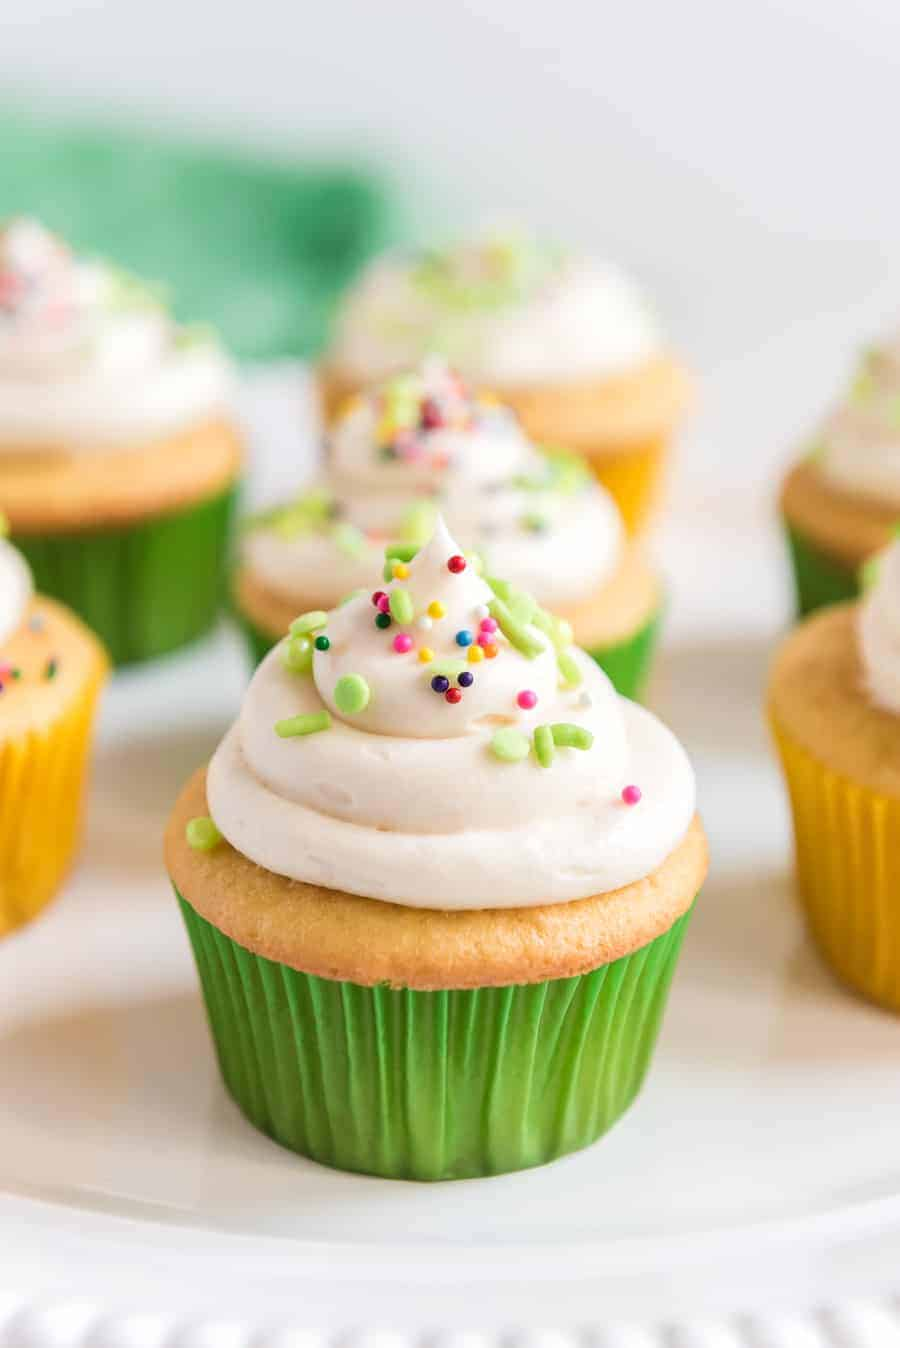 Up close shot of a cupcake that has been iced with vanilla frosting and a variety of sprinkles.